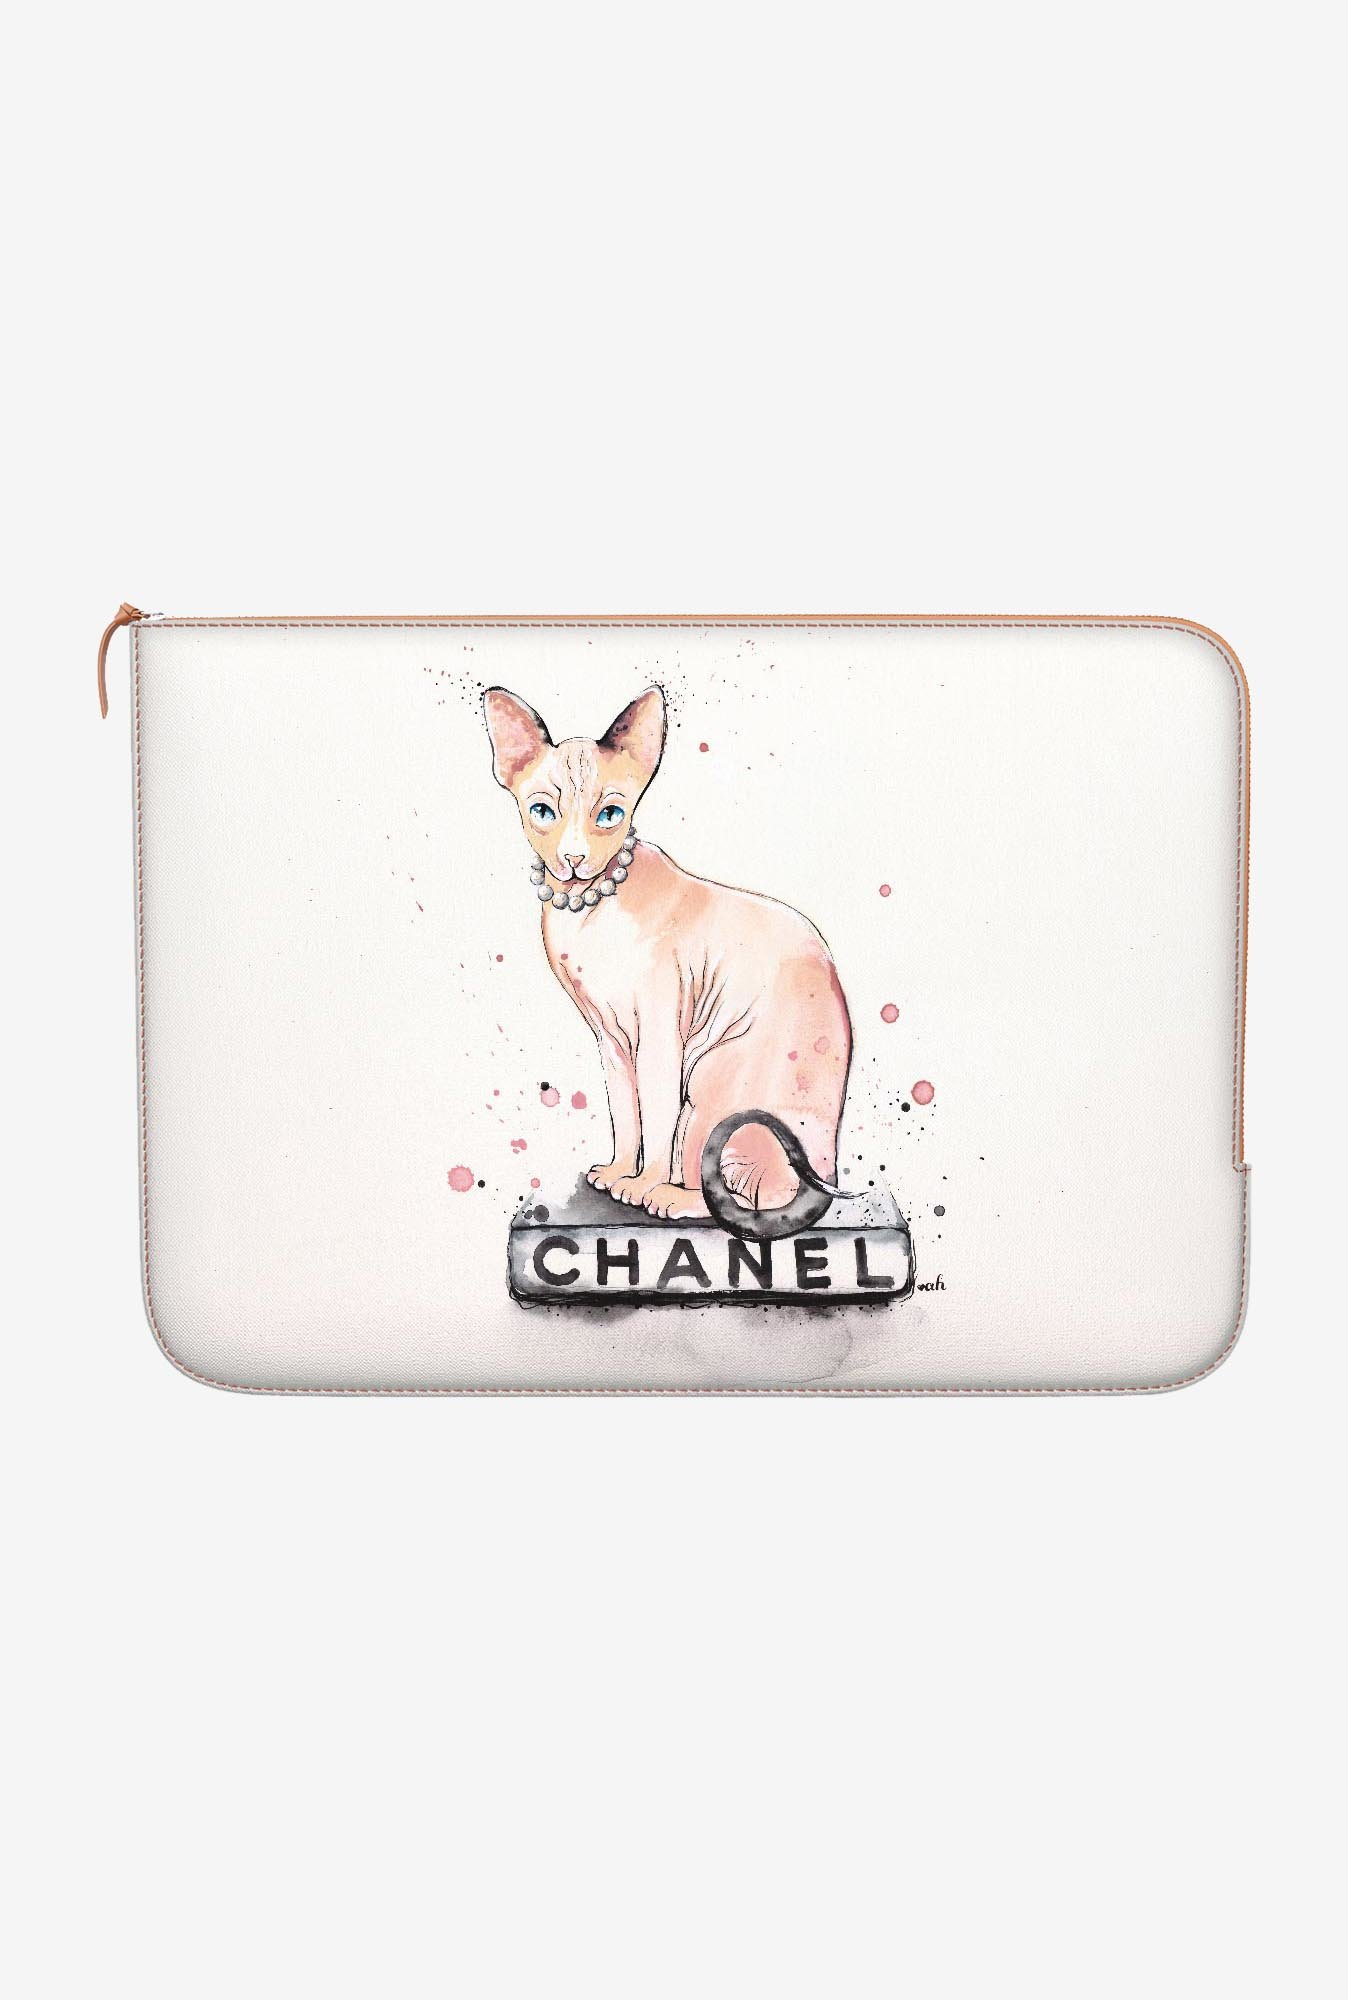 DailyObjects Call Me Coco MacBook Air 13 Zippered Sleeve